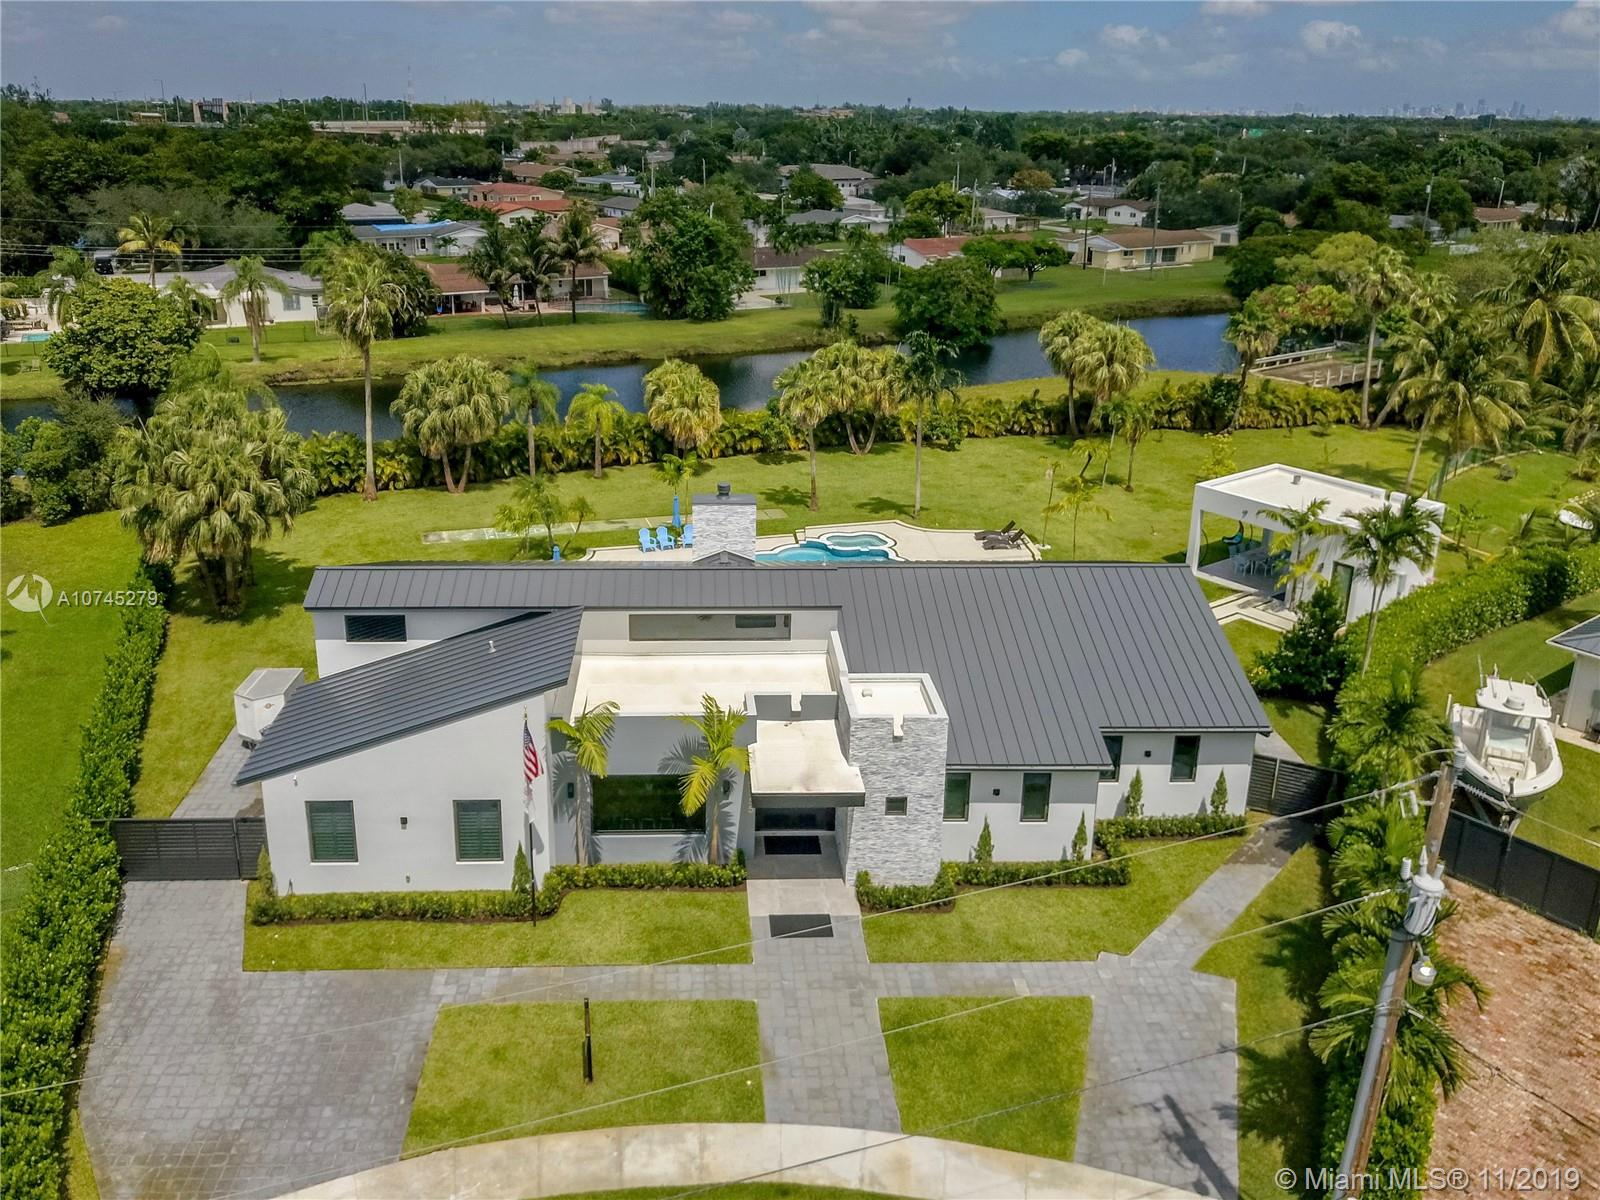 9355 SW 84th Ter, Kendall, Florida